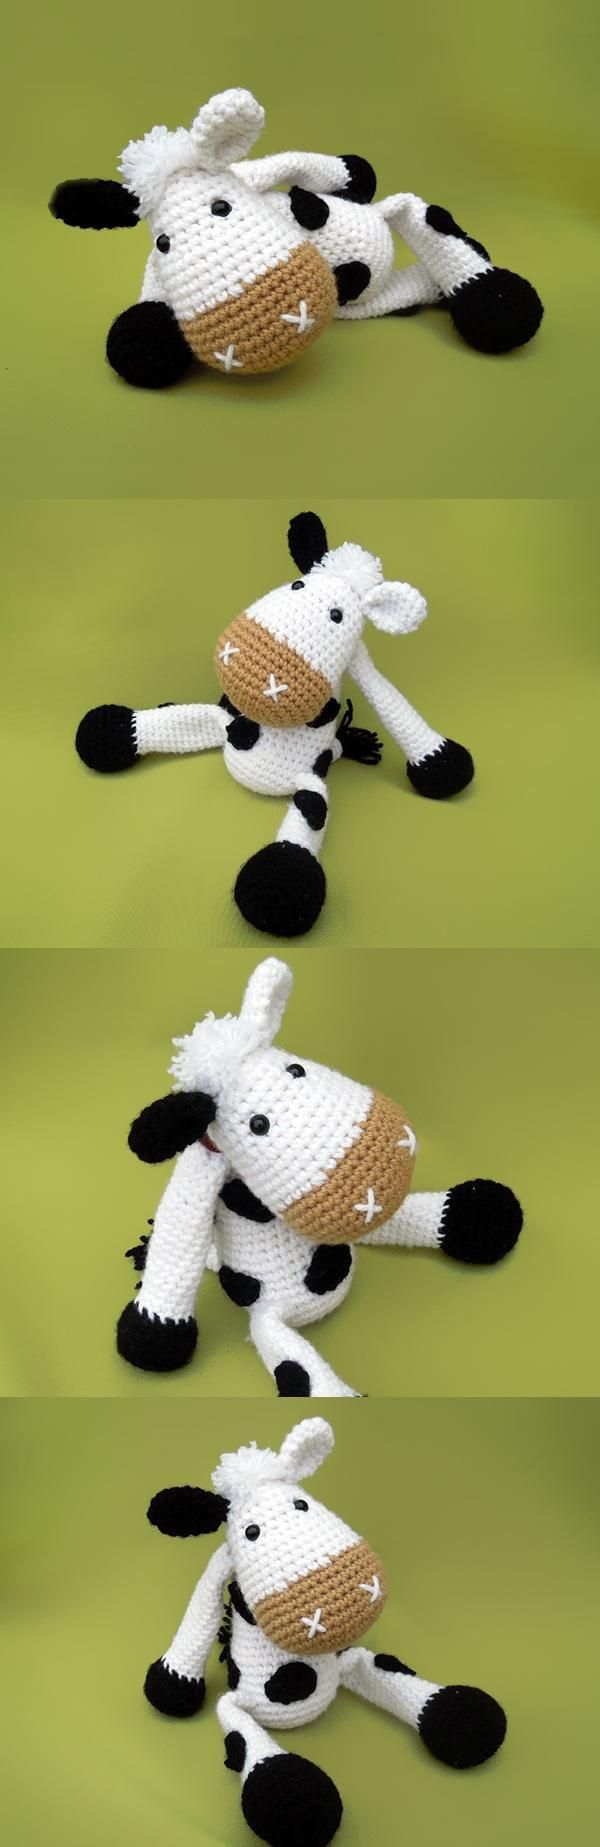 Amigurumi Easter Egg Pattern Free : 4038 best images about A Stitch In Time....... on Pinterest